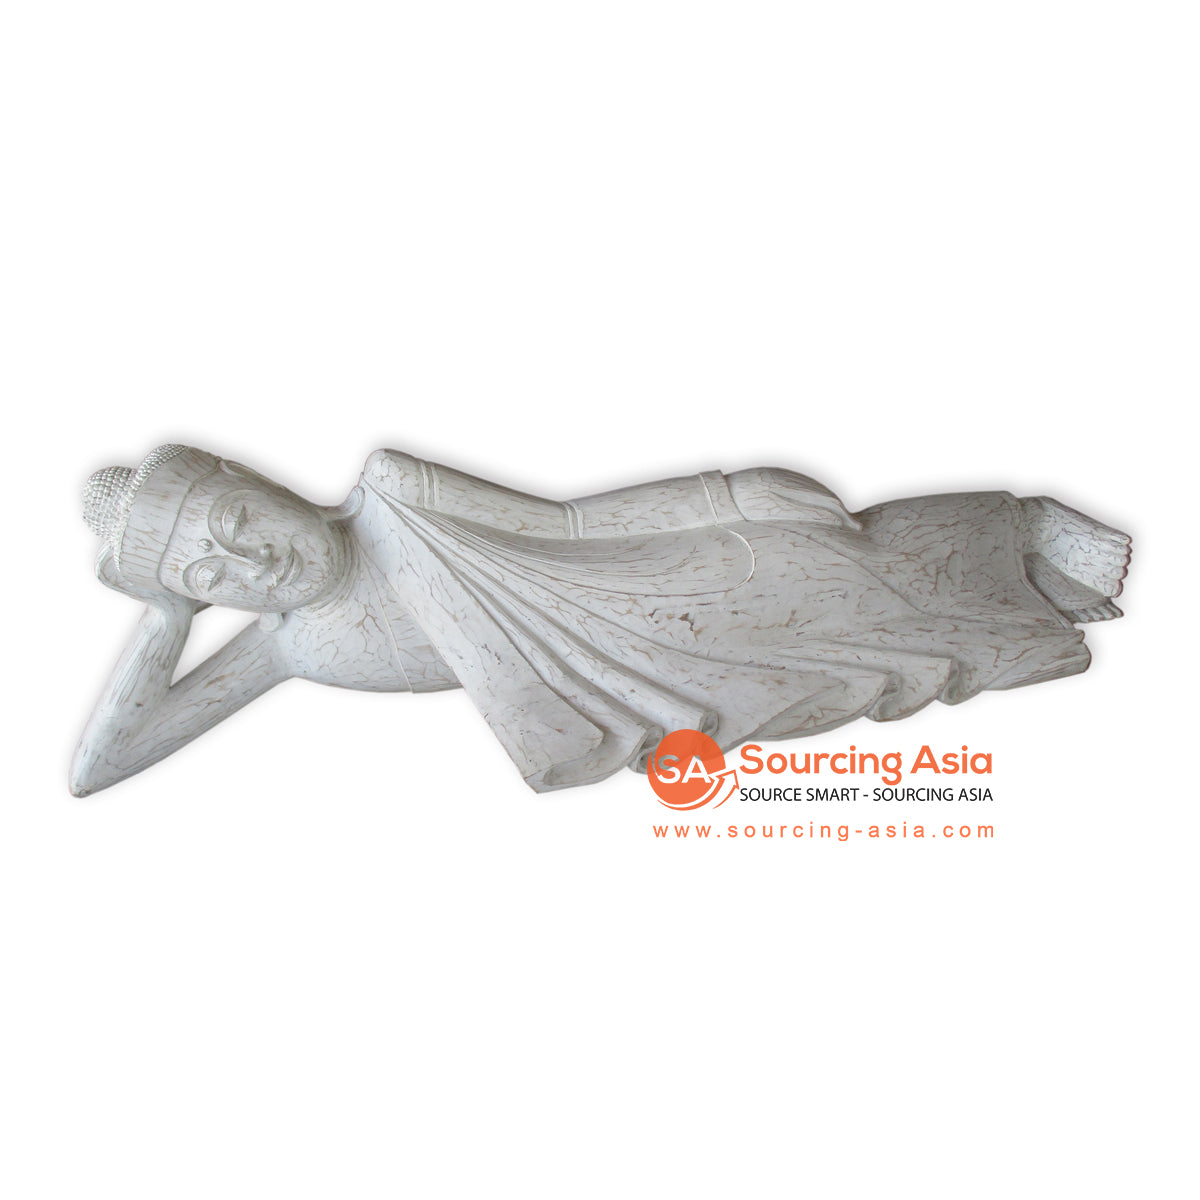 THE143XXL WHITEWASH SLEEPING BUDDHA WITH SIZE XXL